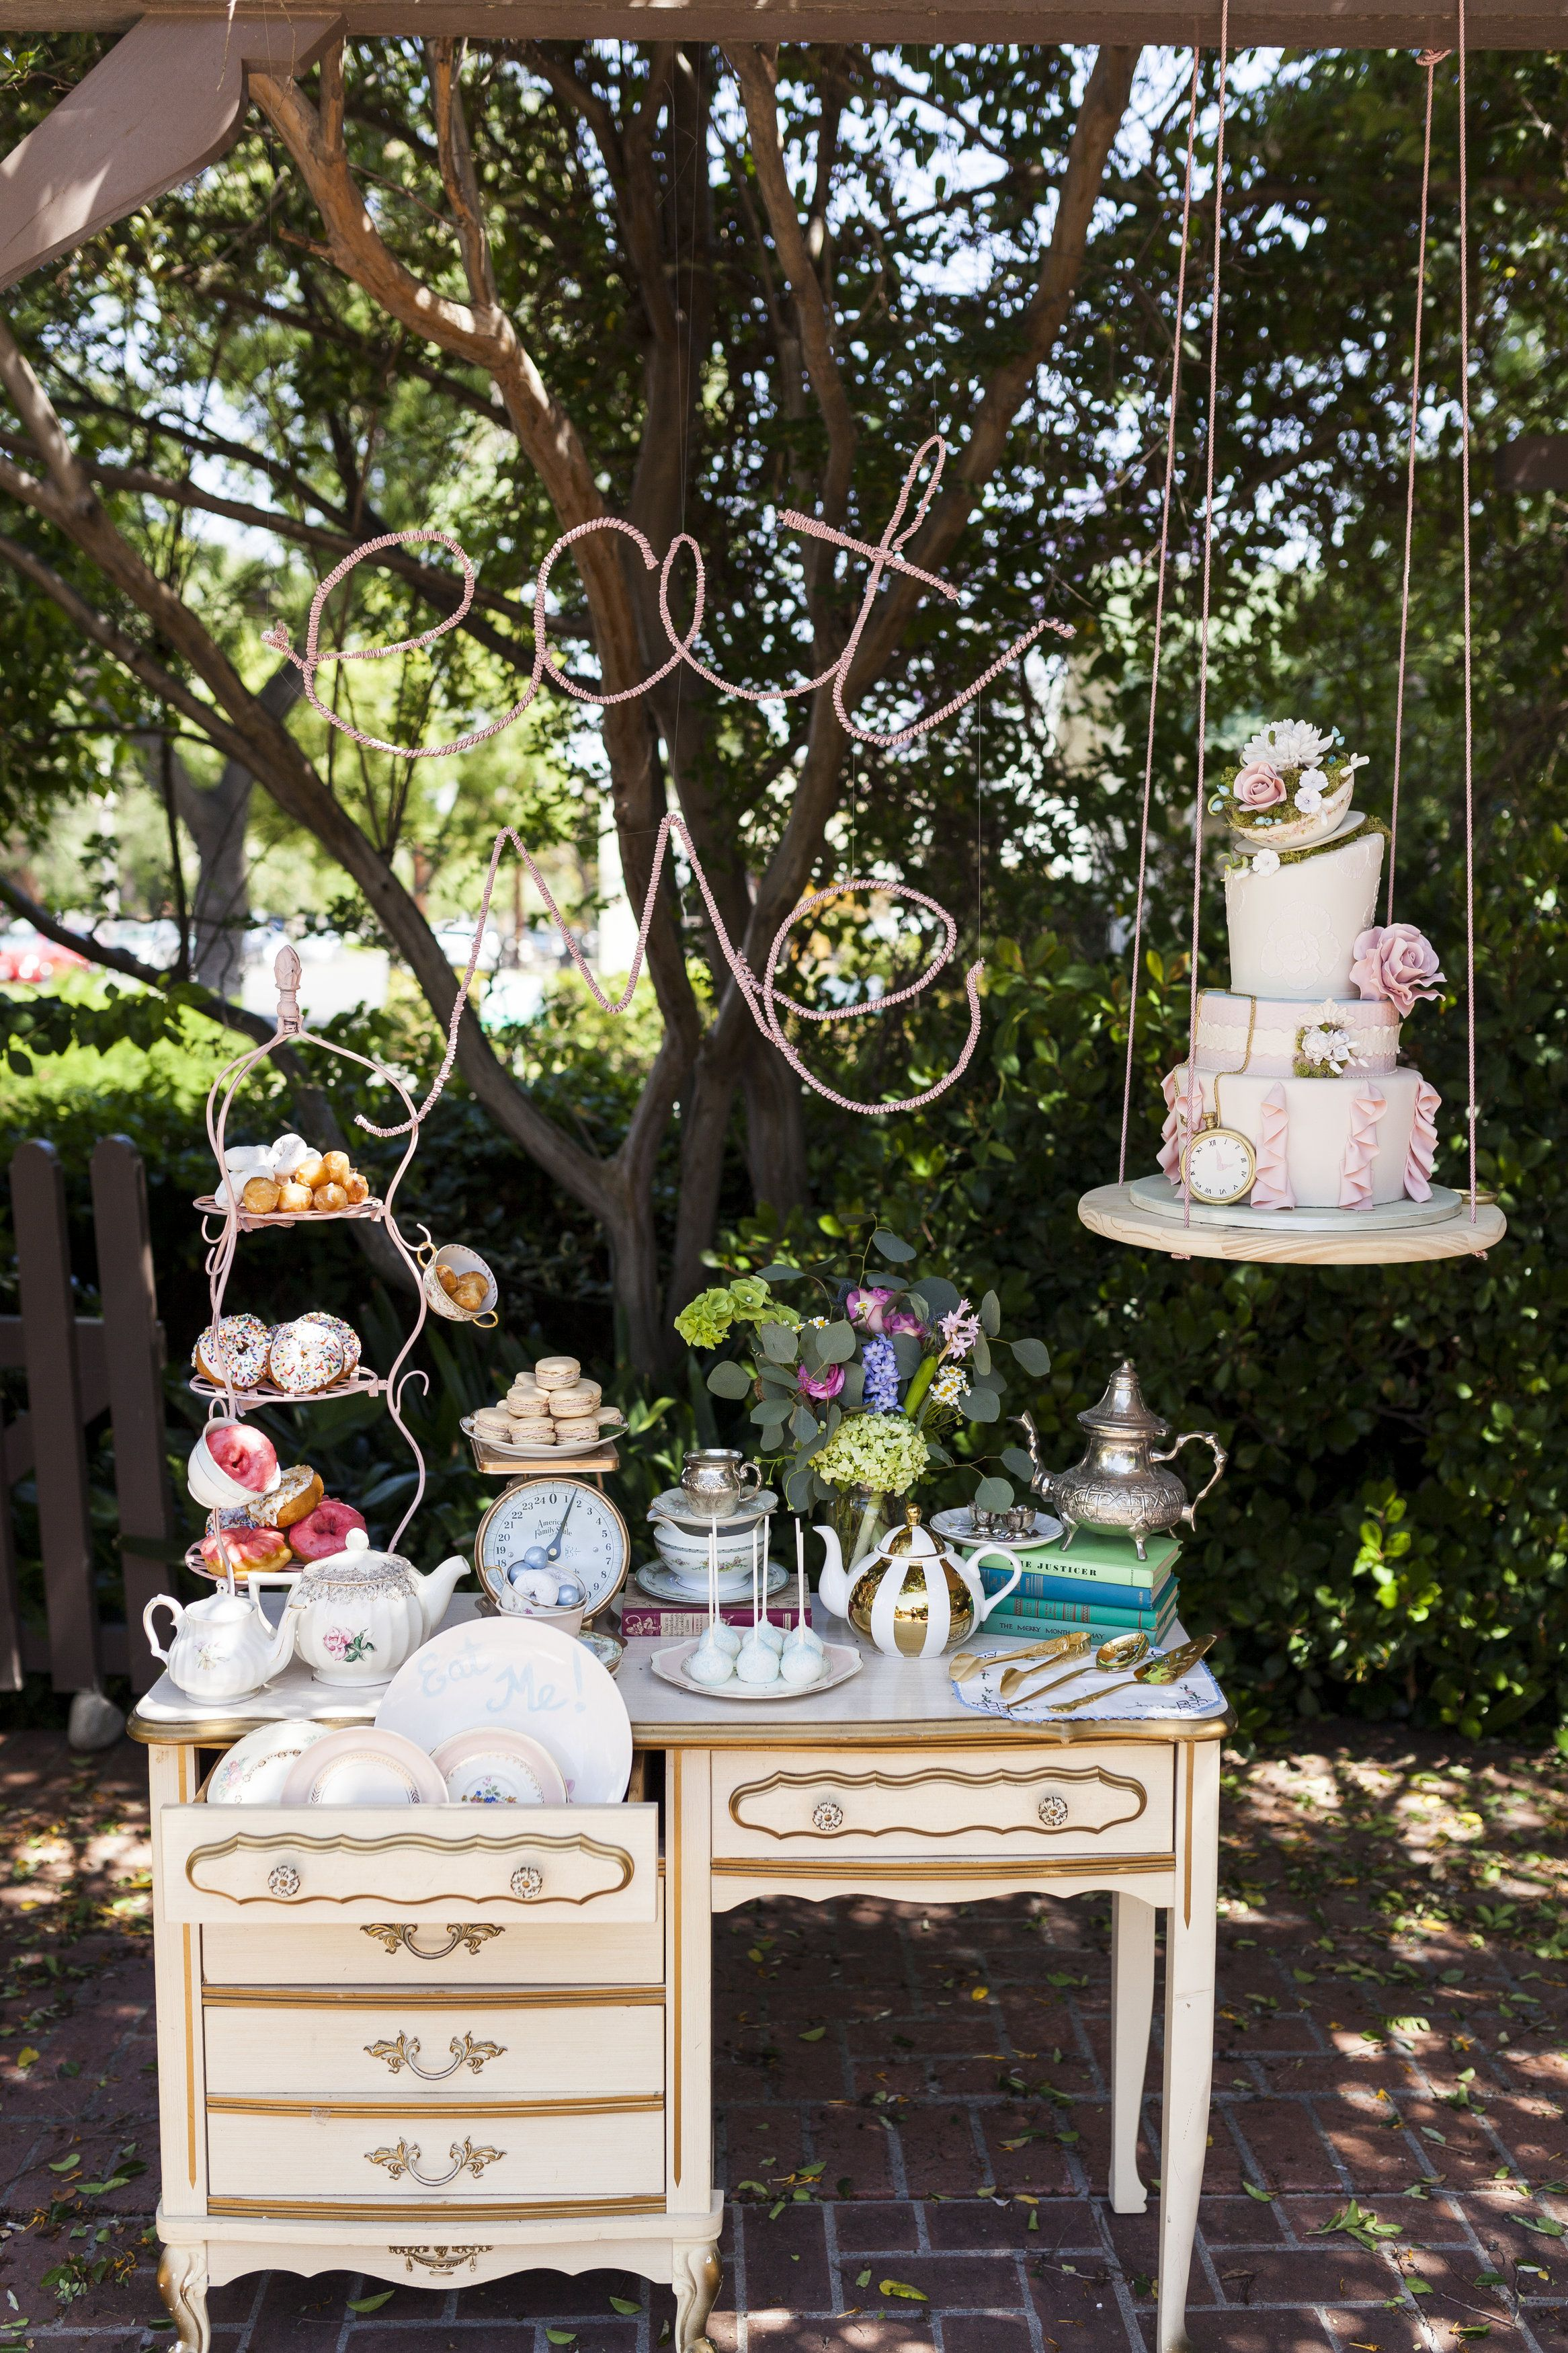 Outdoor garden wedding decoration ideas  Whimsical Dessert Table With Floating Cake  Décoration Gourmande